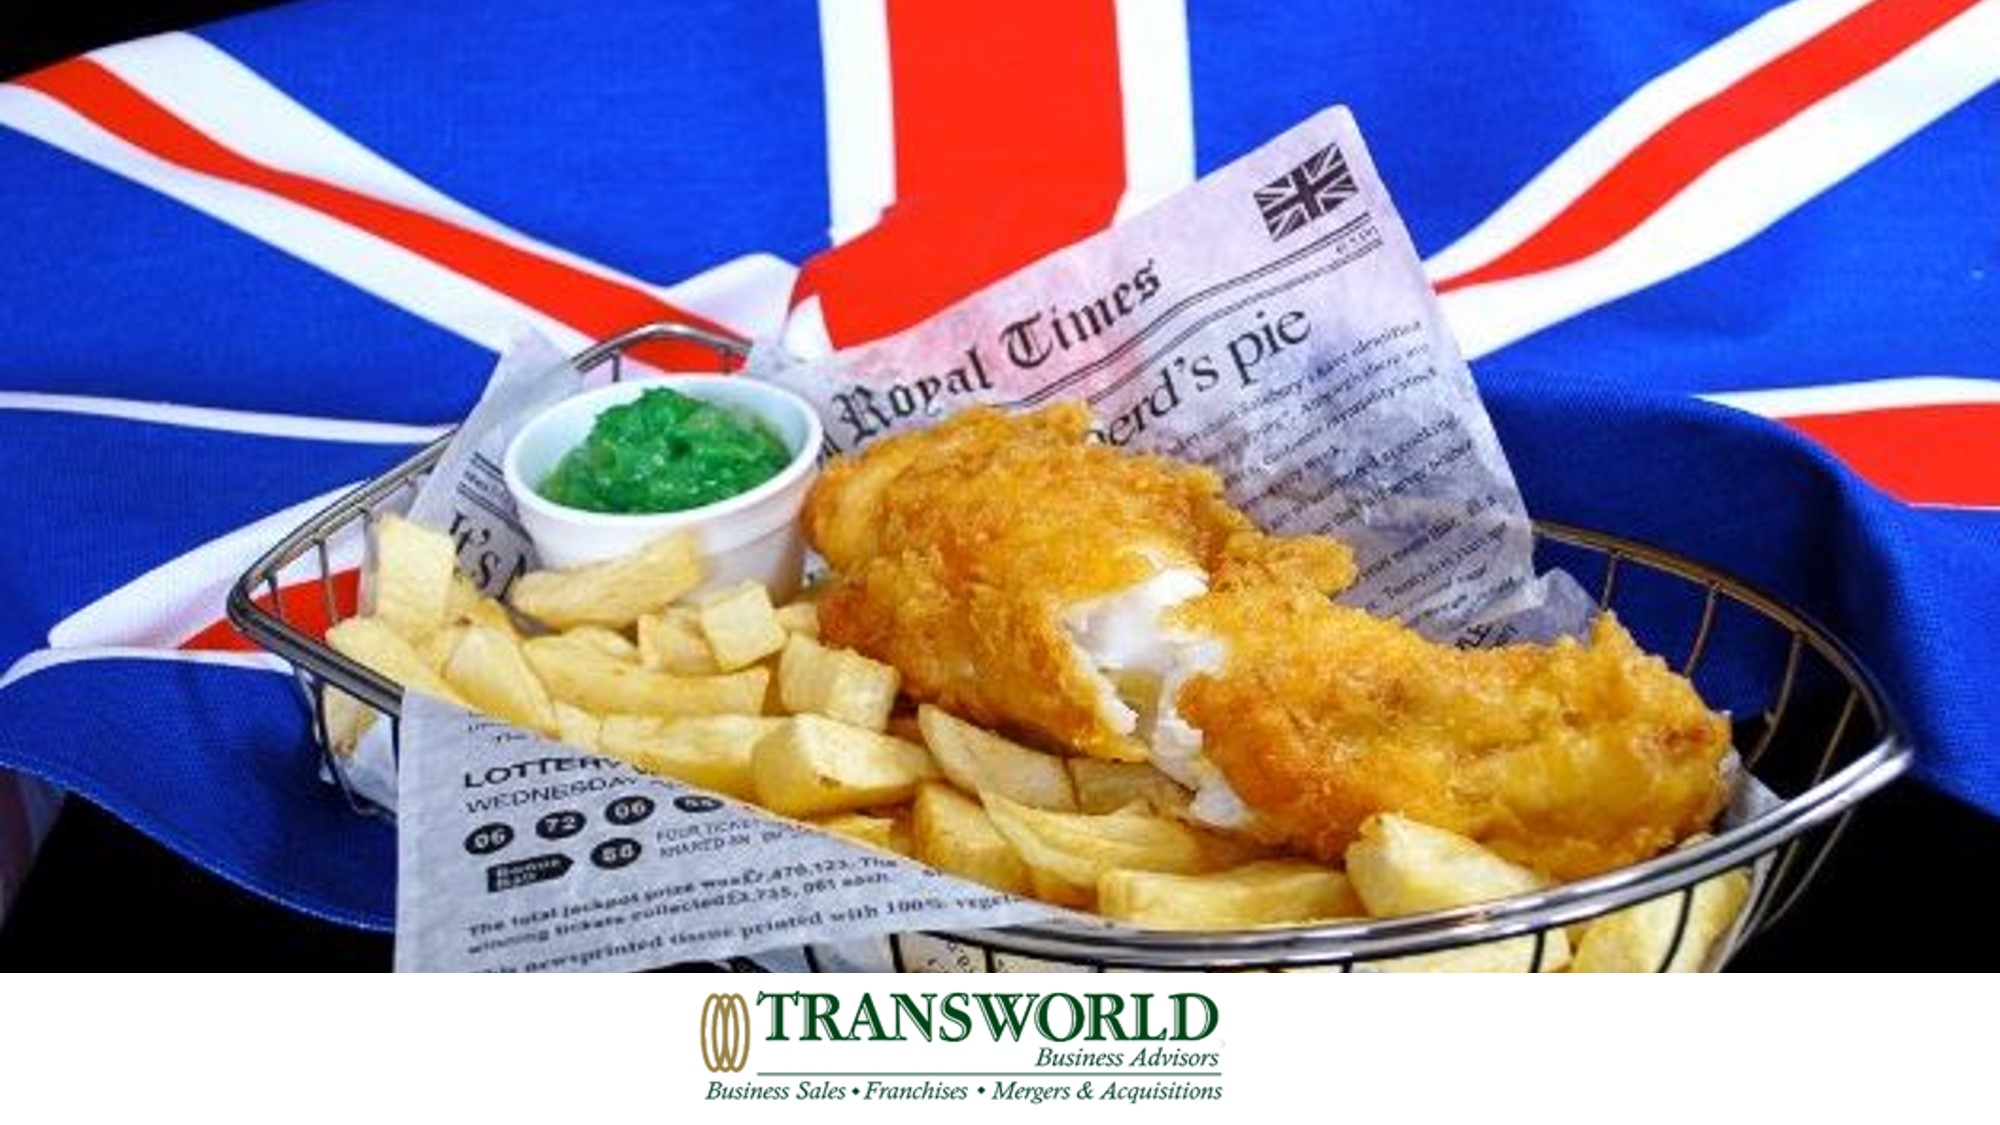 MASSIVELY REDUCED - Traditional British Theme Fish and Chip Shop